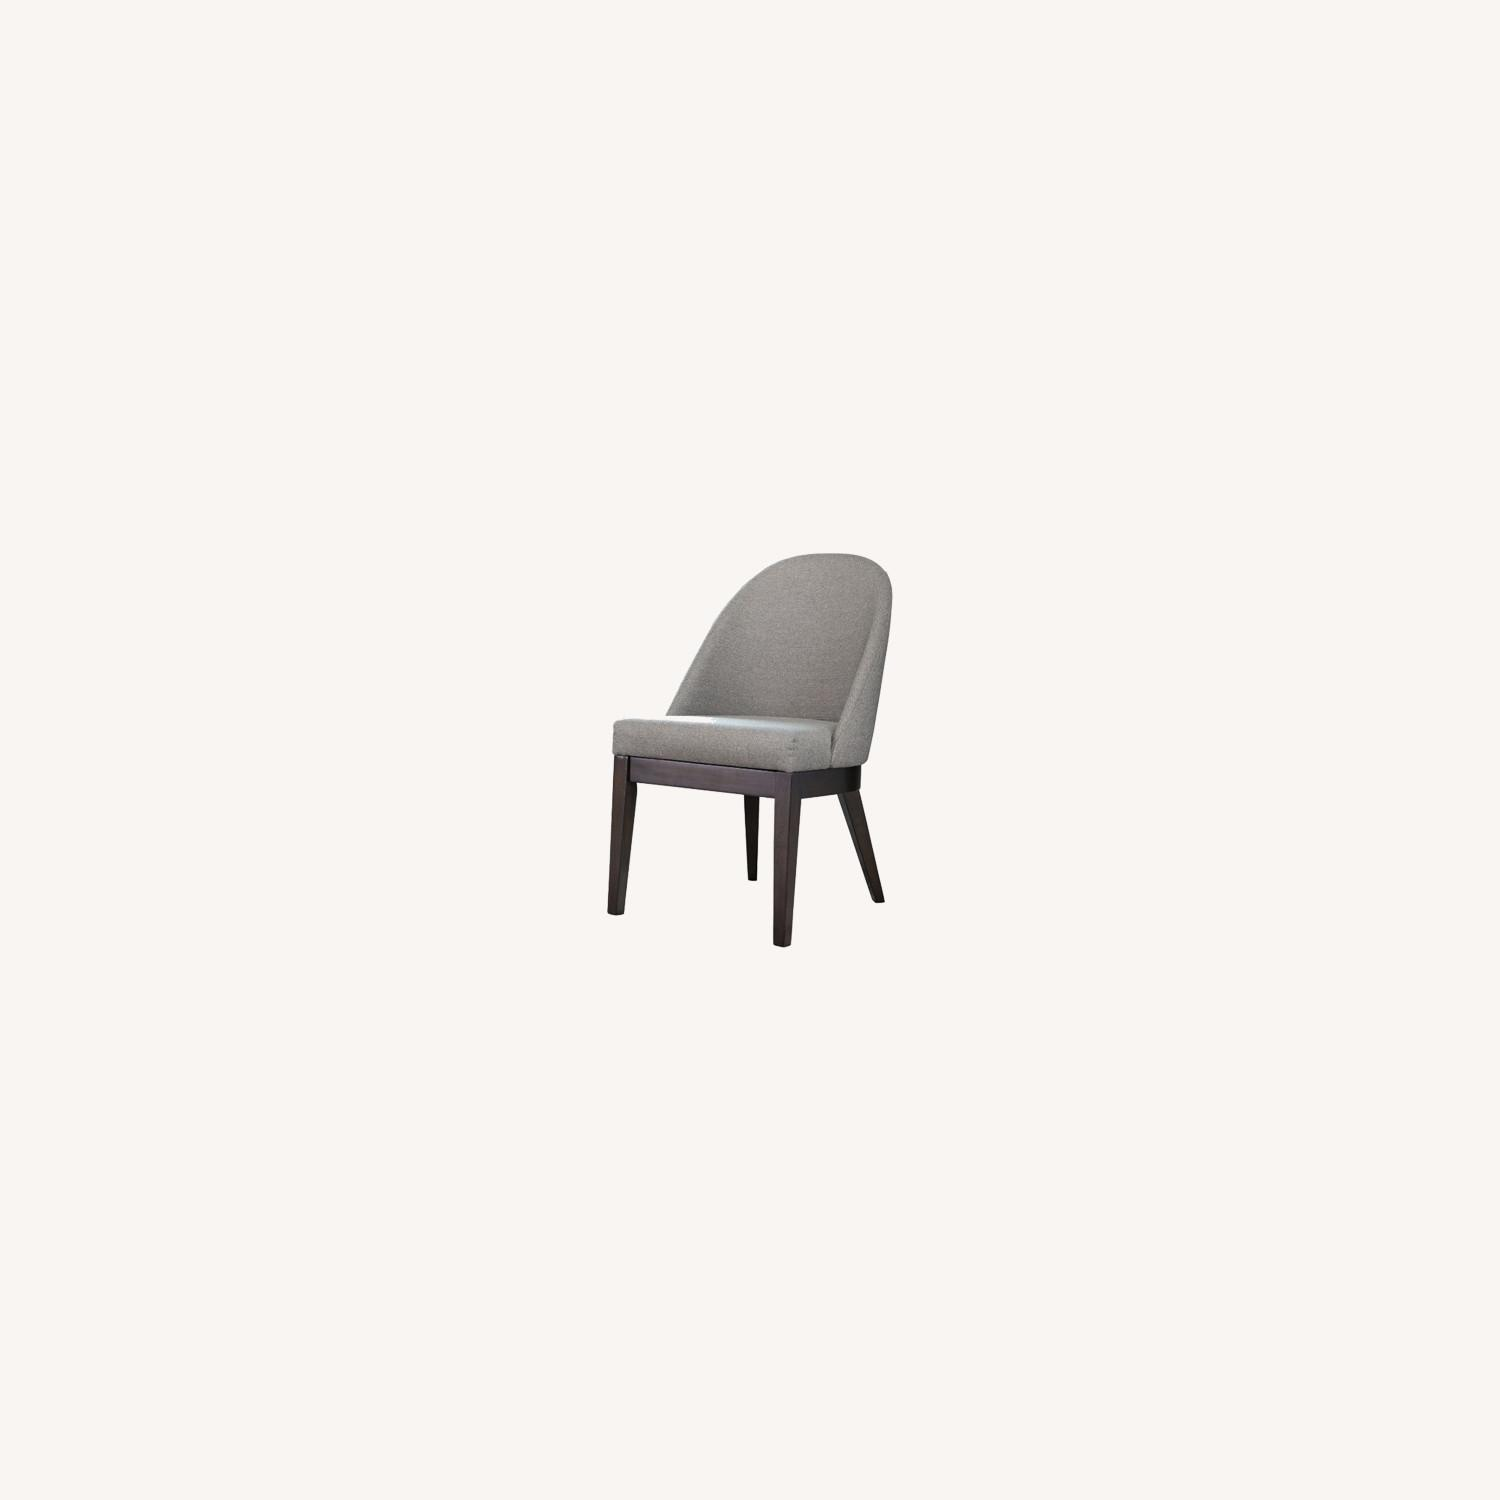 Glamorous Dining Chair In Light Grey Fabric - image-3